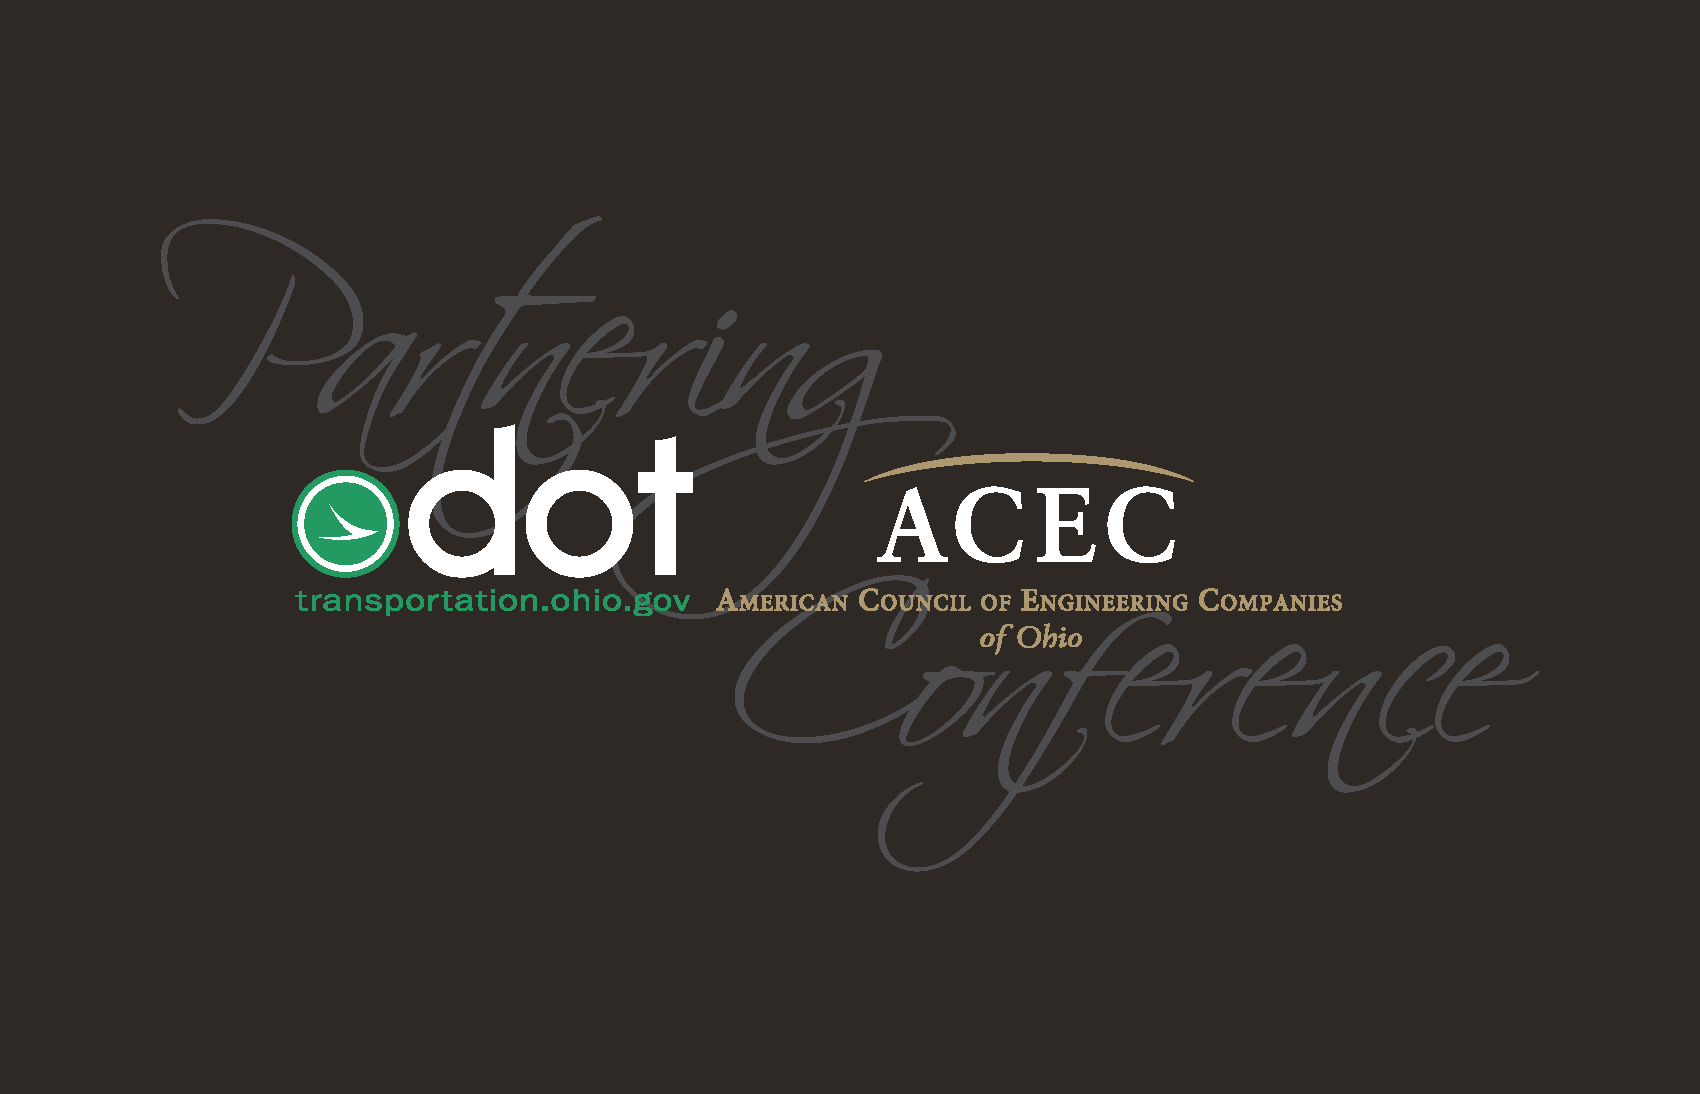 ODOT_ACEC_PartneringConference_GRAPHIC.png#asset:840